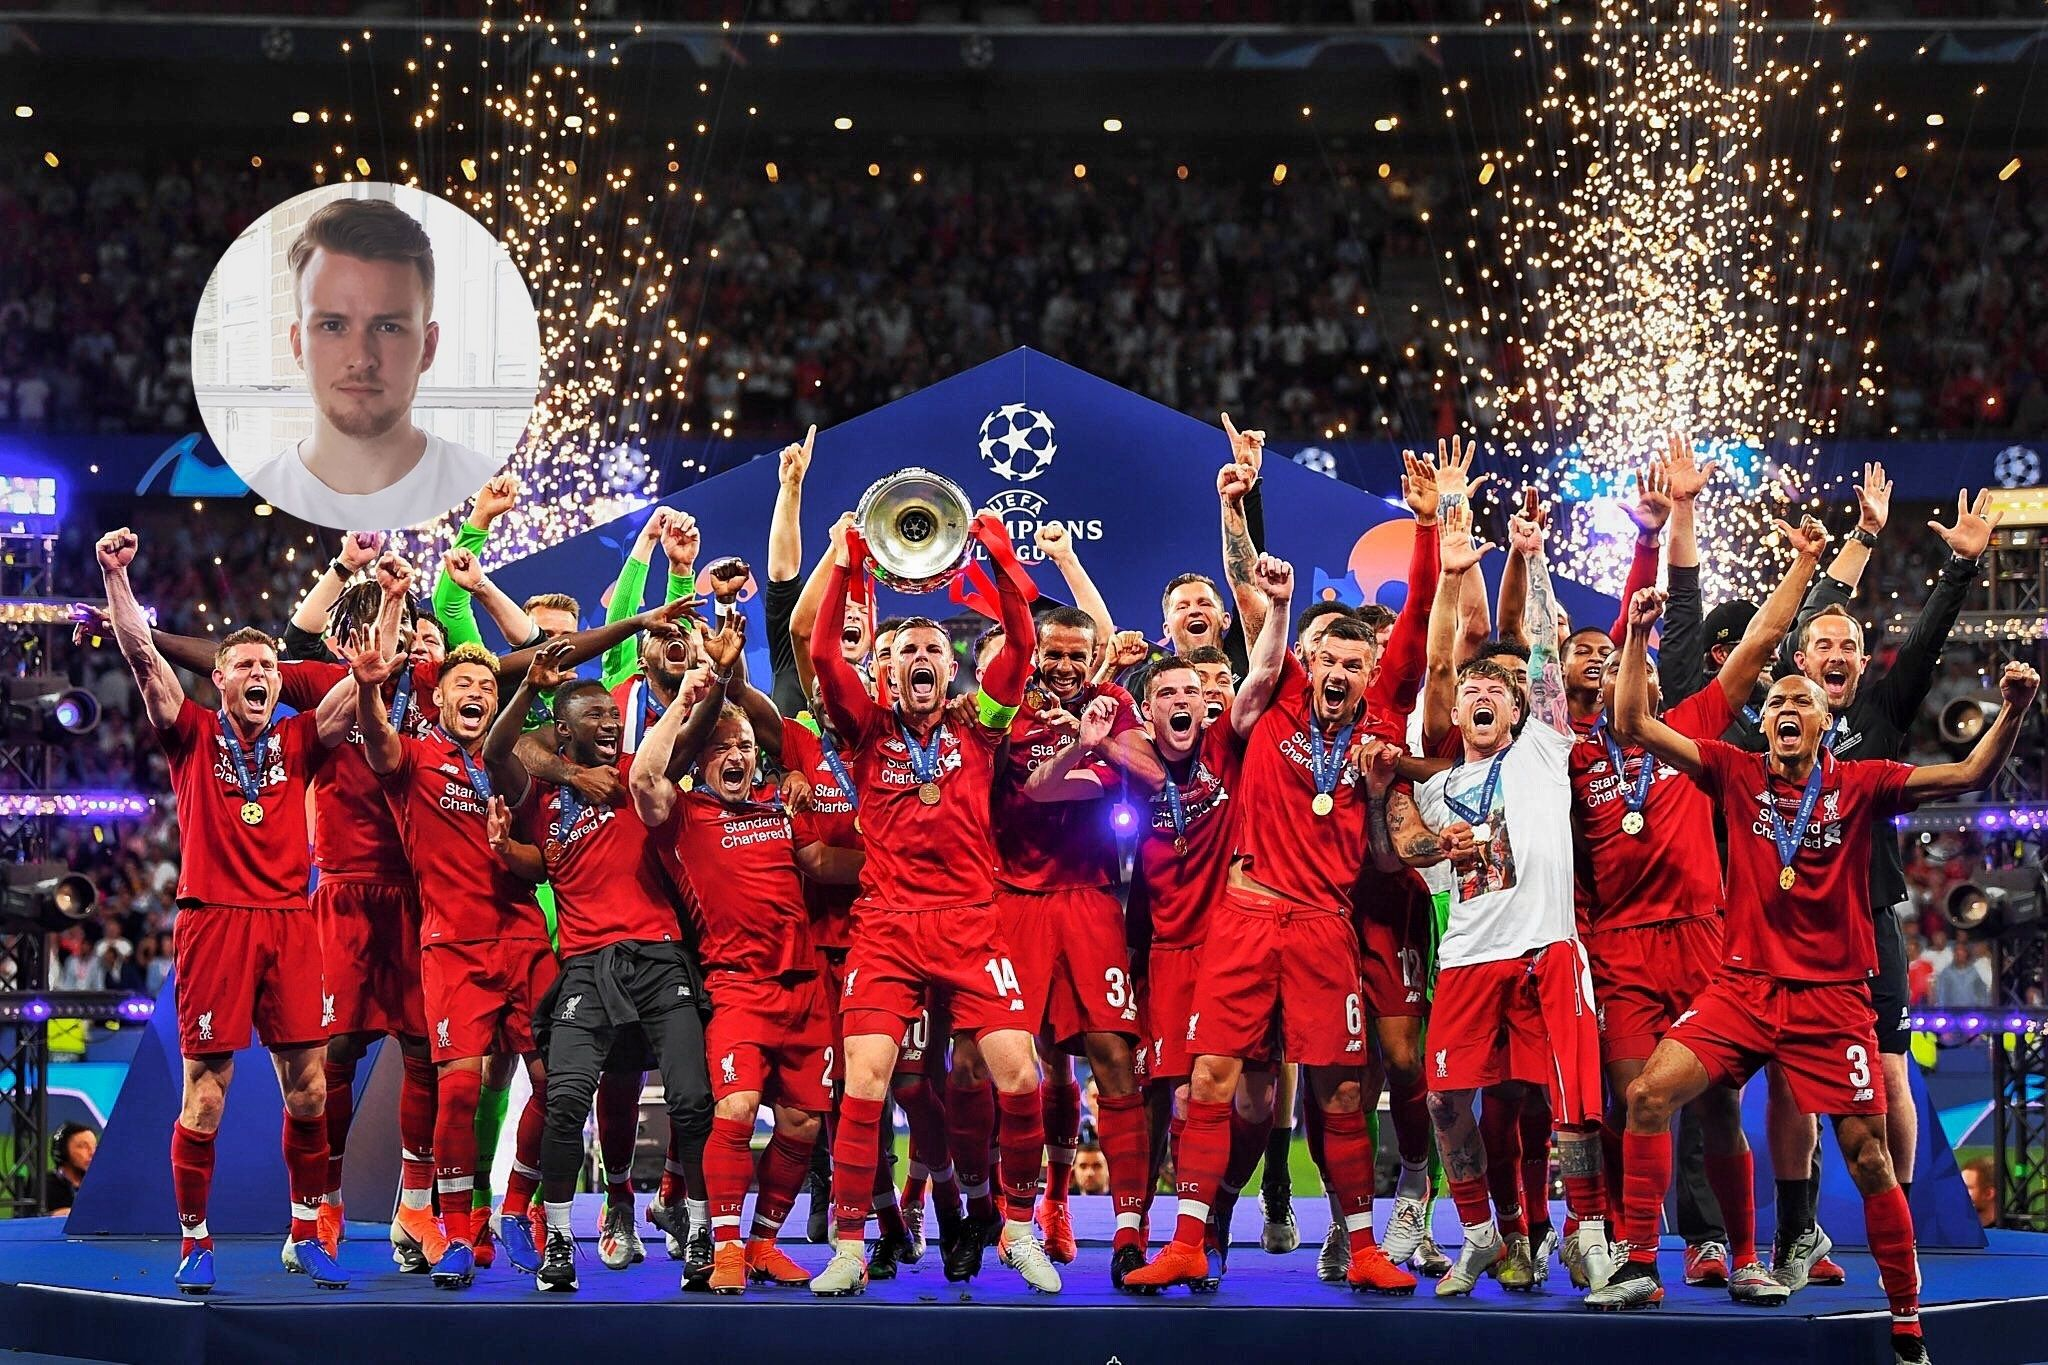 Farrell's Column: Plans to form a European Super League are an attack on fans just as much as UEFA